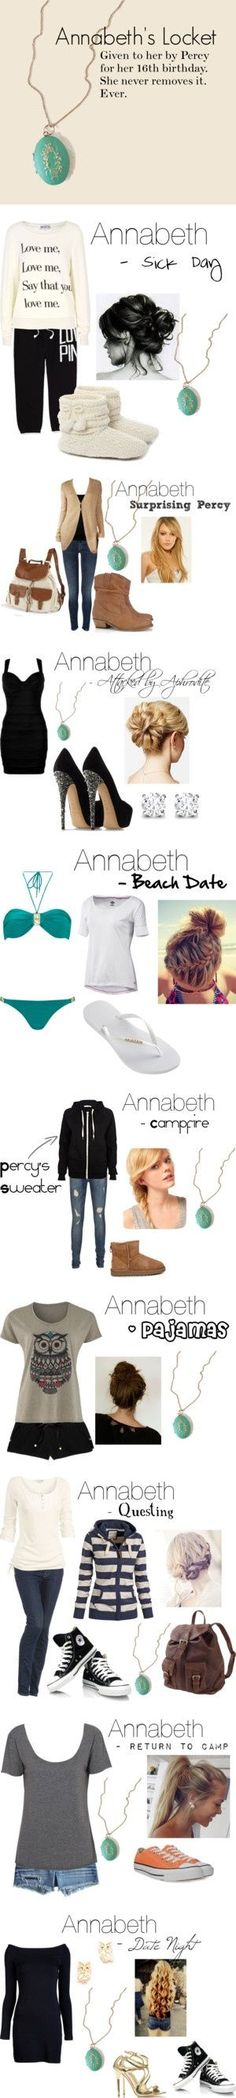 Percy Jackson The Olympians: Annabeth by dyingjusttoknowyourname liked on Polyvore